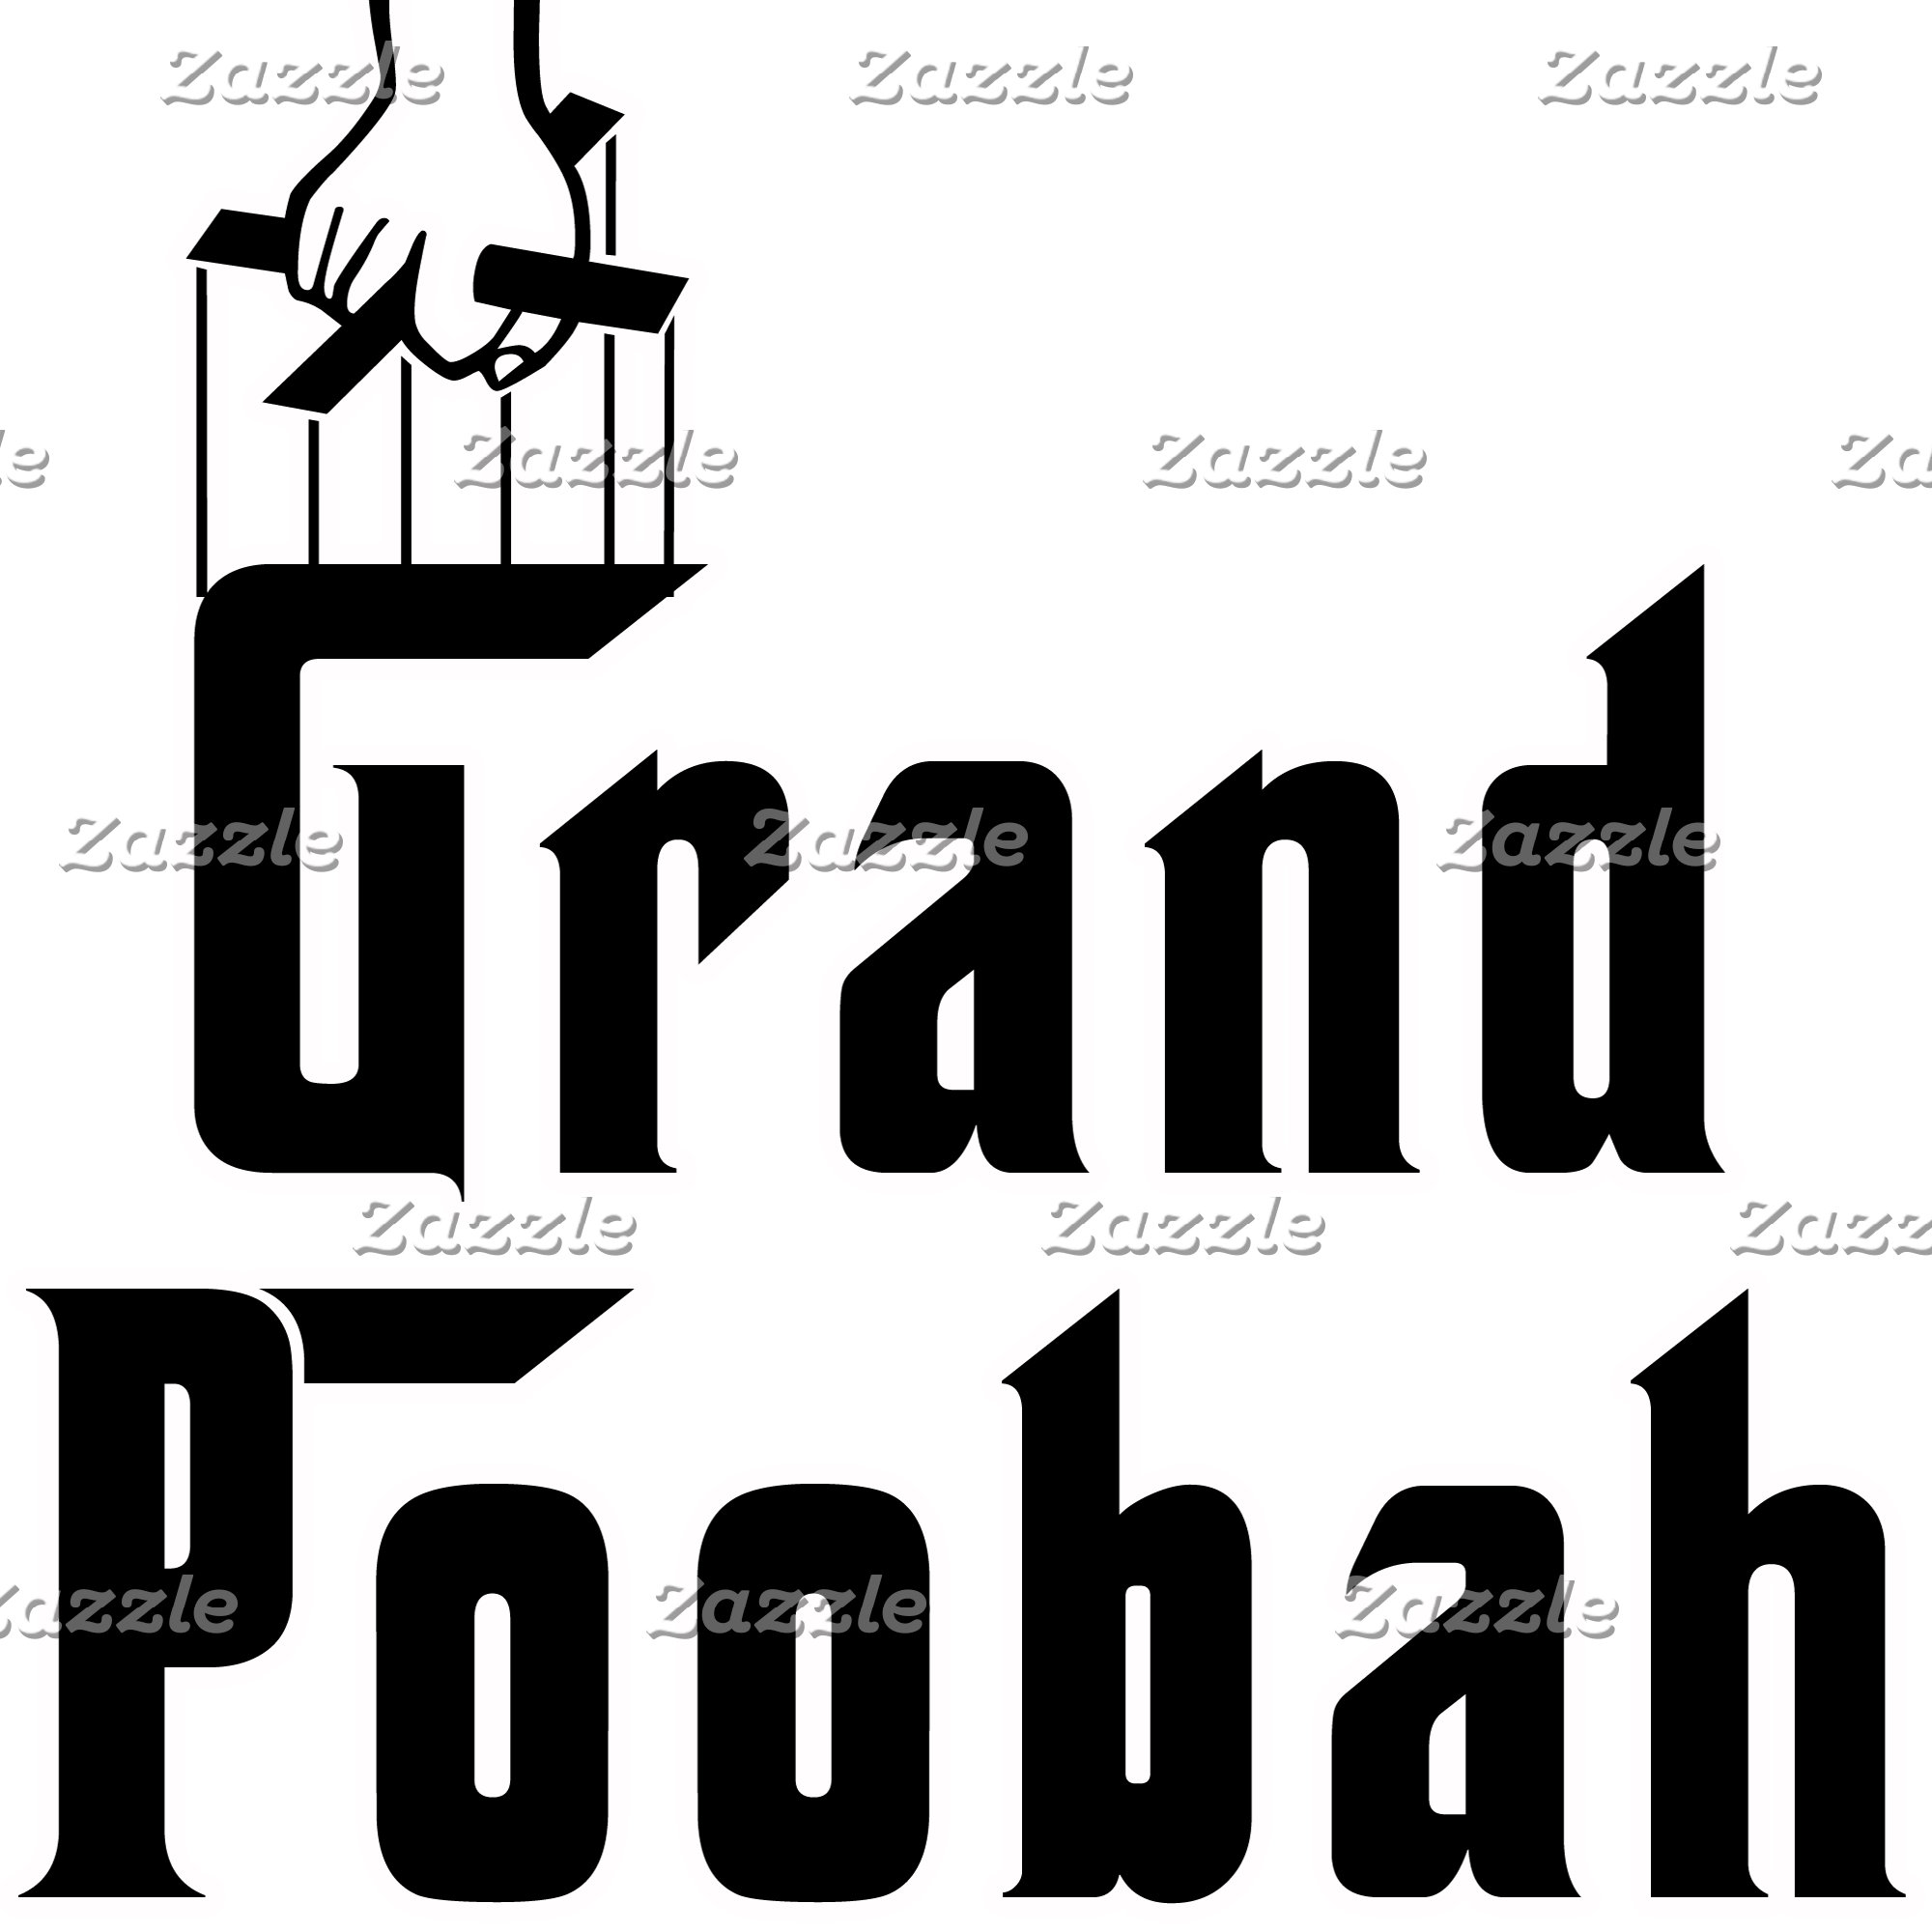 The Grand Poobah in Godfather Font